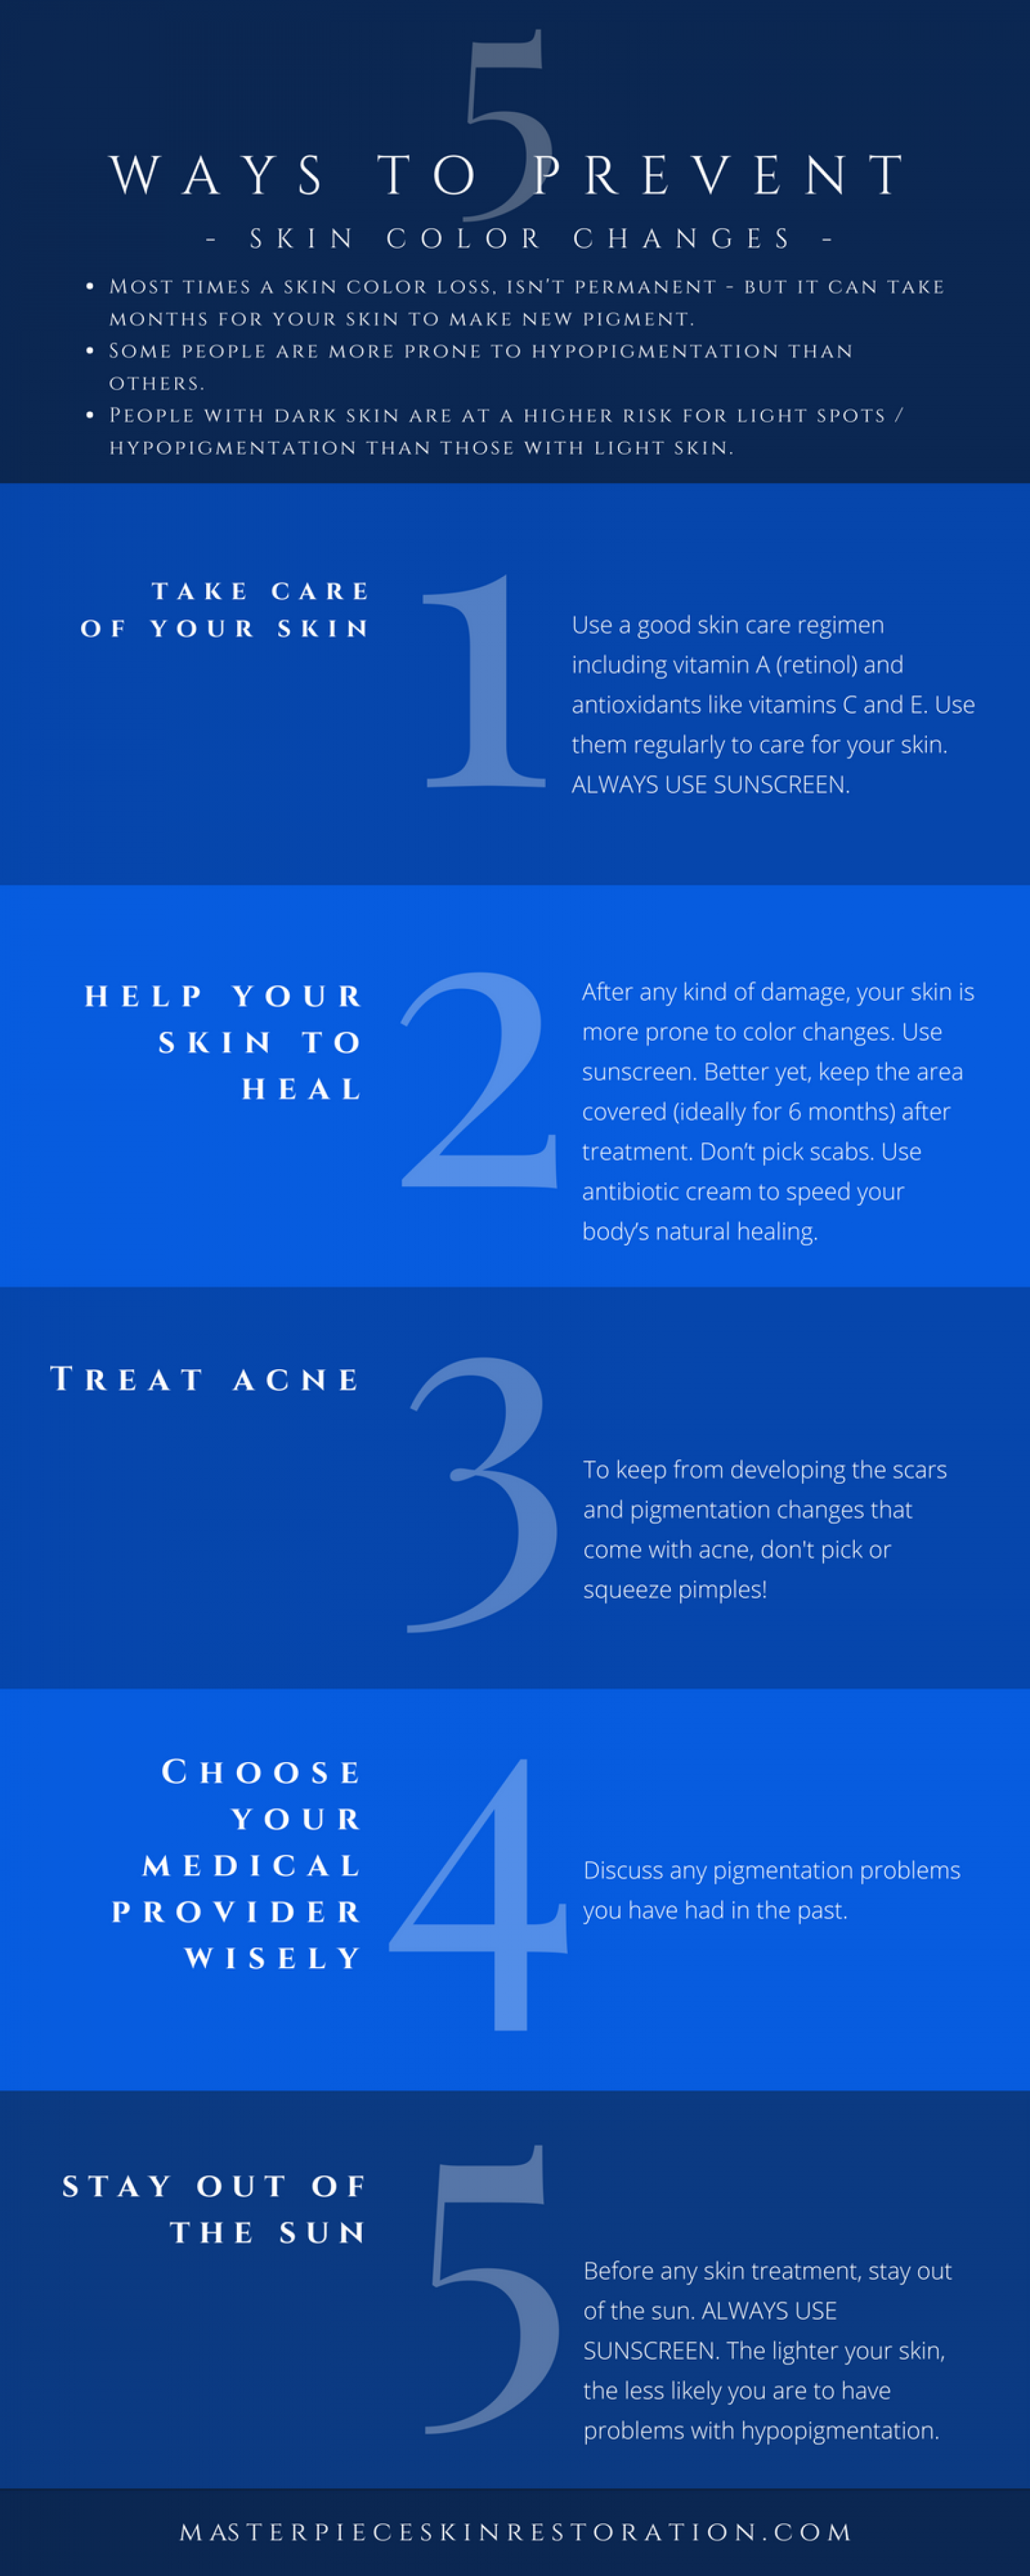 5 Ways to Prevent Skin Color Changes Infographic